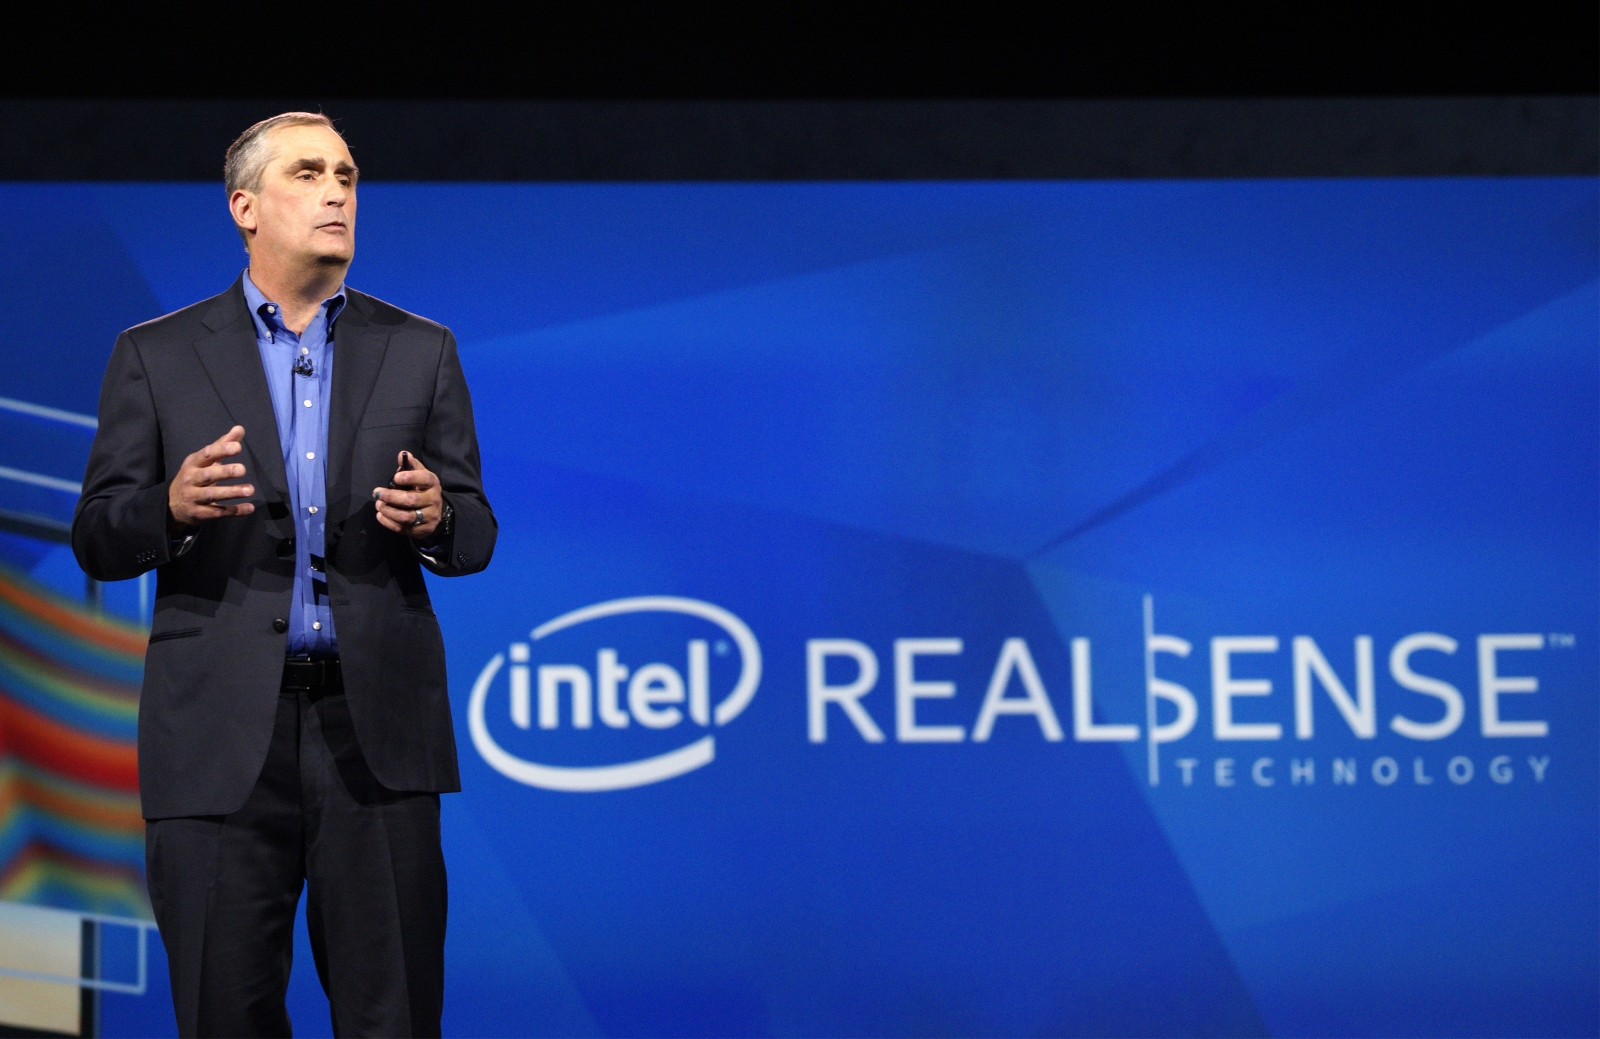 Intel Realsense will help drones avoid collision